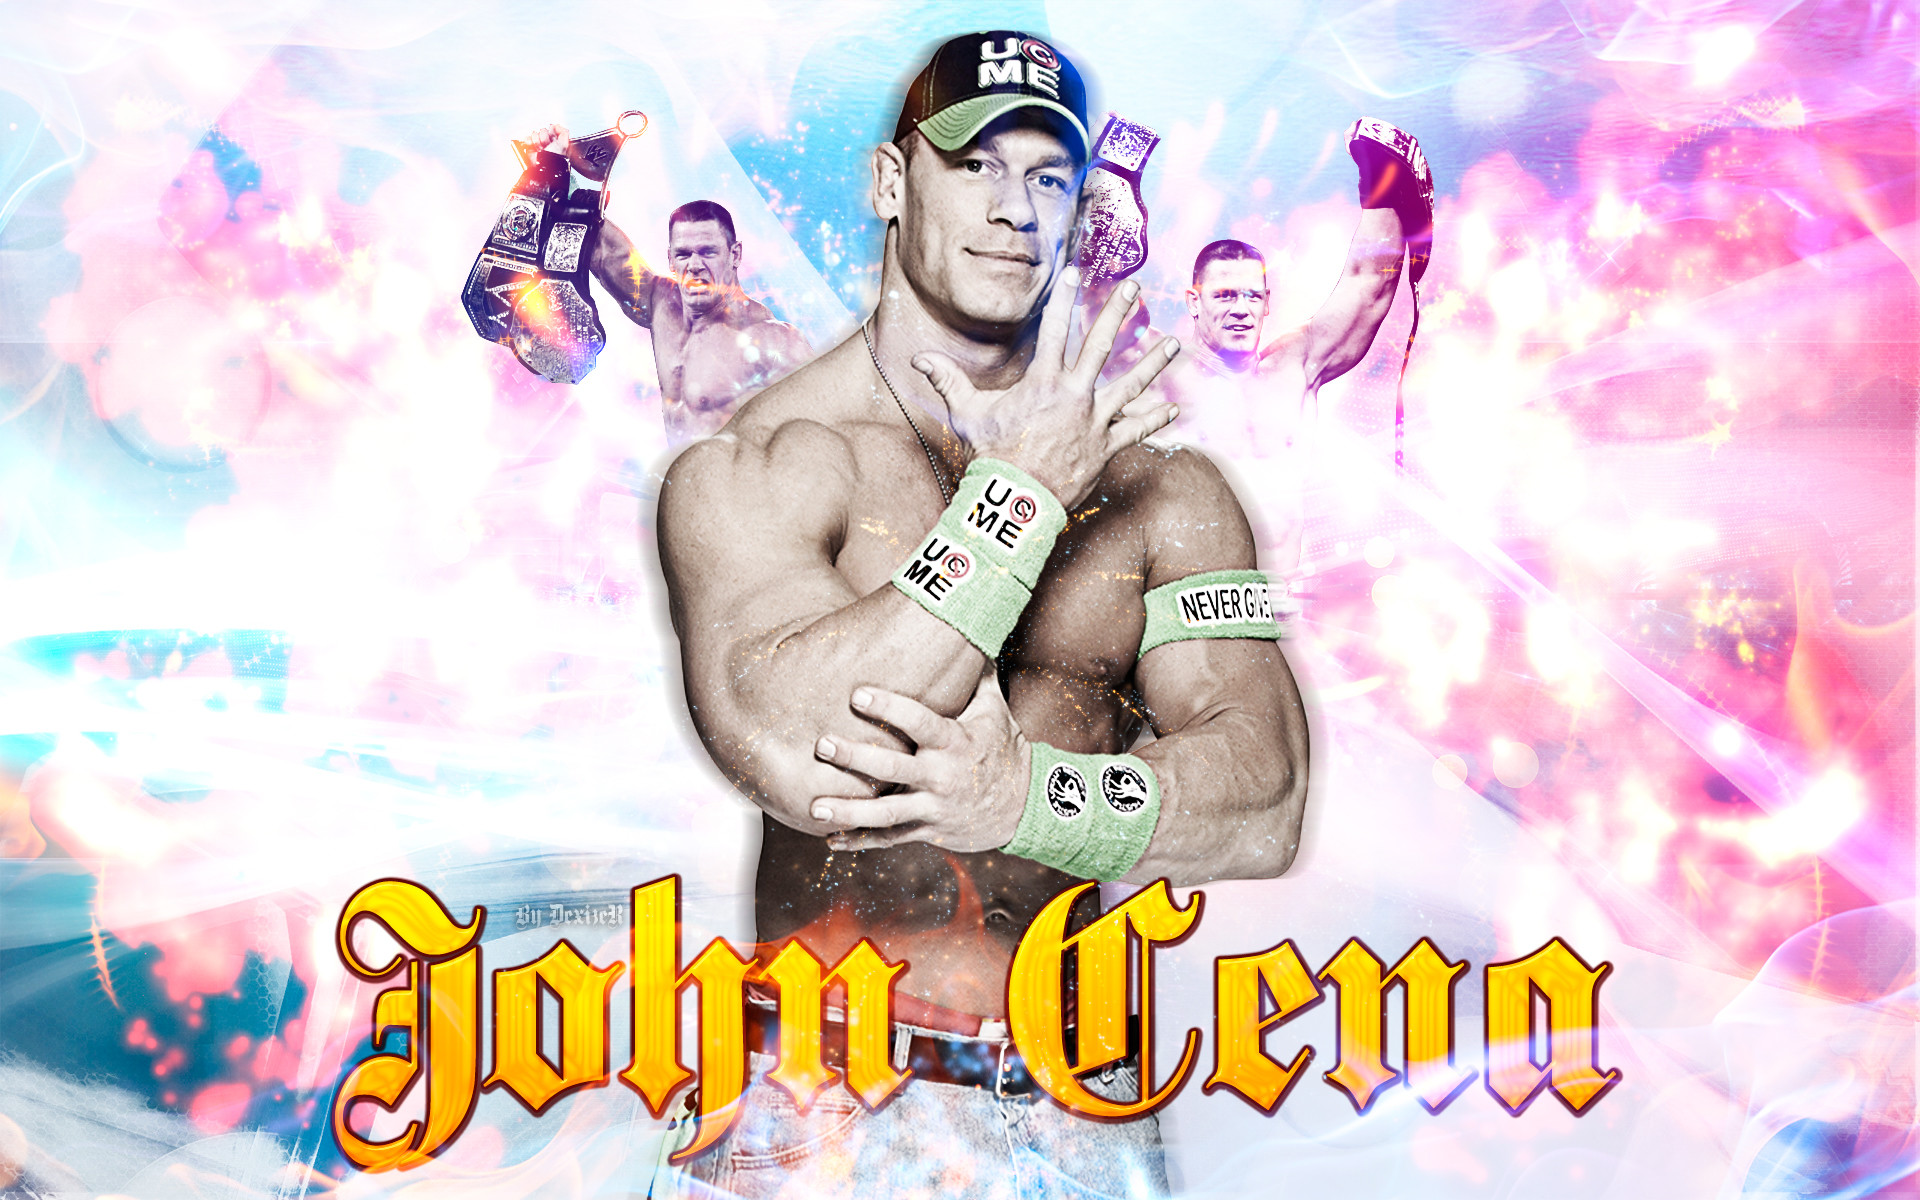 1920x1200 John Cena Full HD 1080p Images Photos Pics Wallpapers startwallpapers. Â«Â«